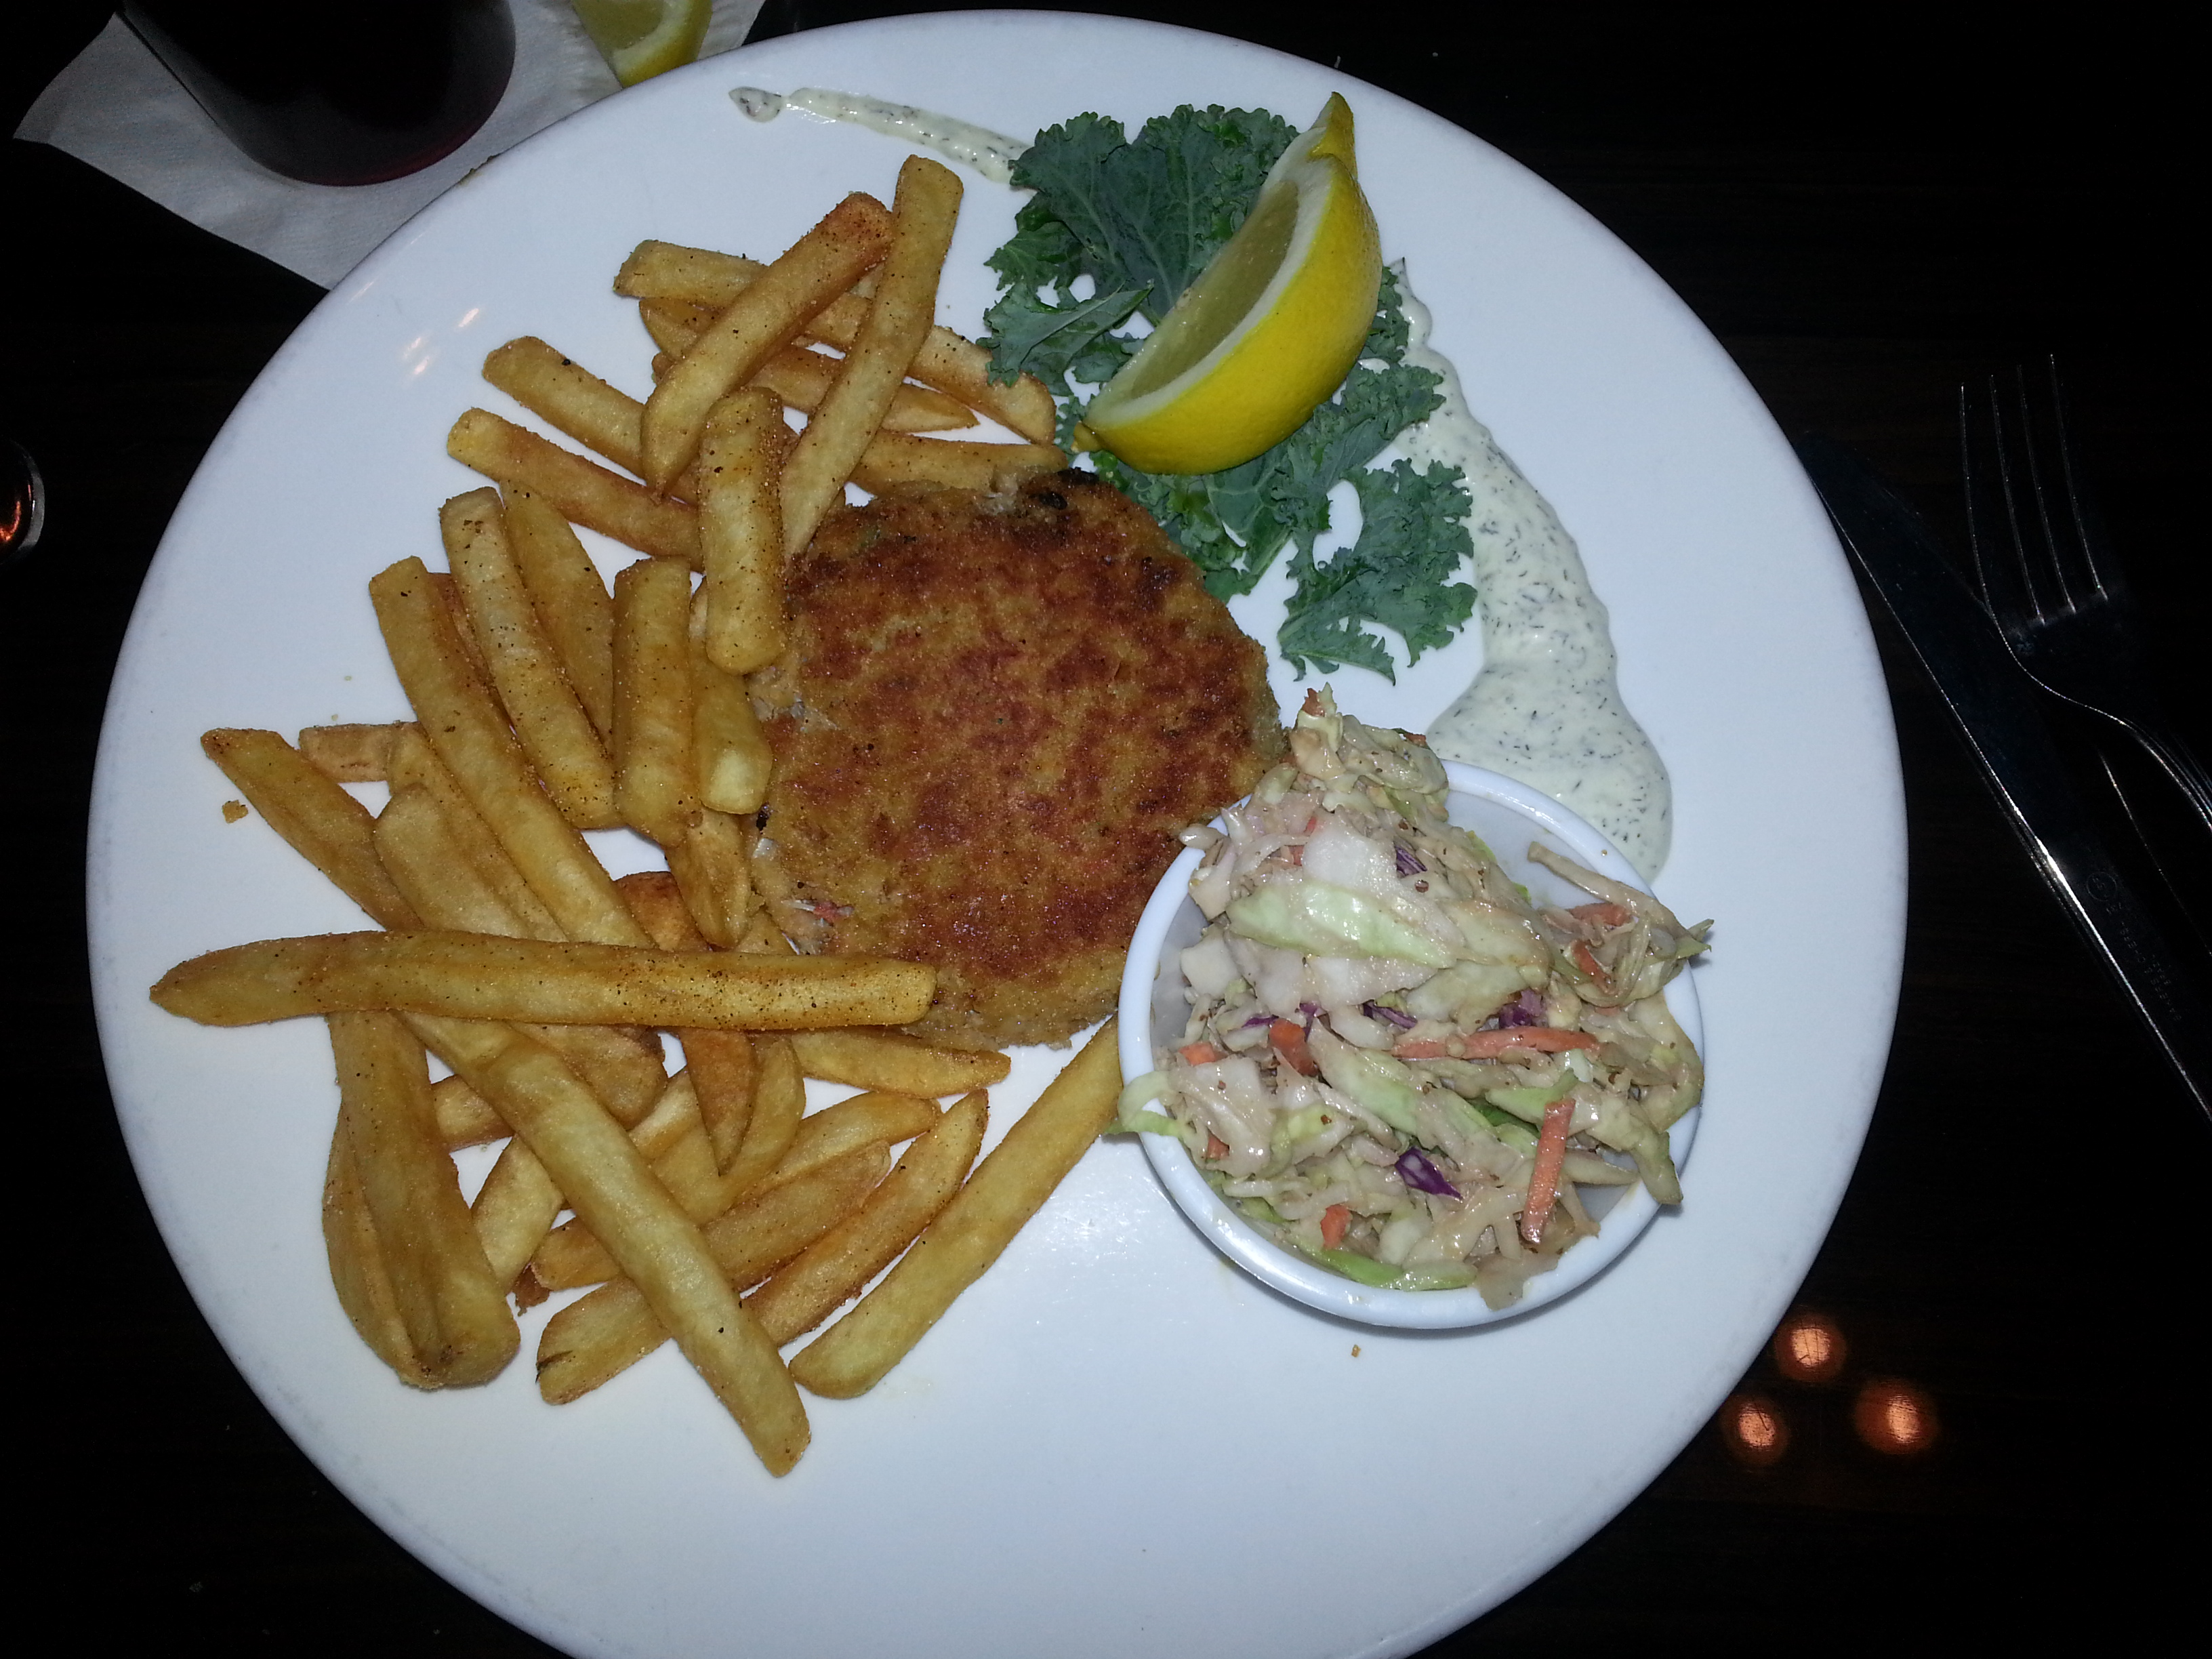 Crab cake, fries and slaw at Ricky P's